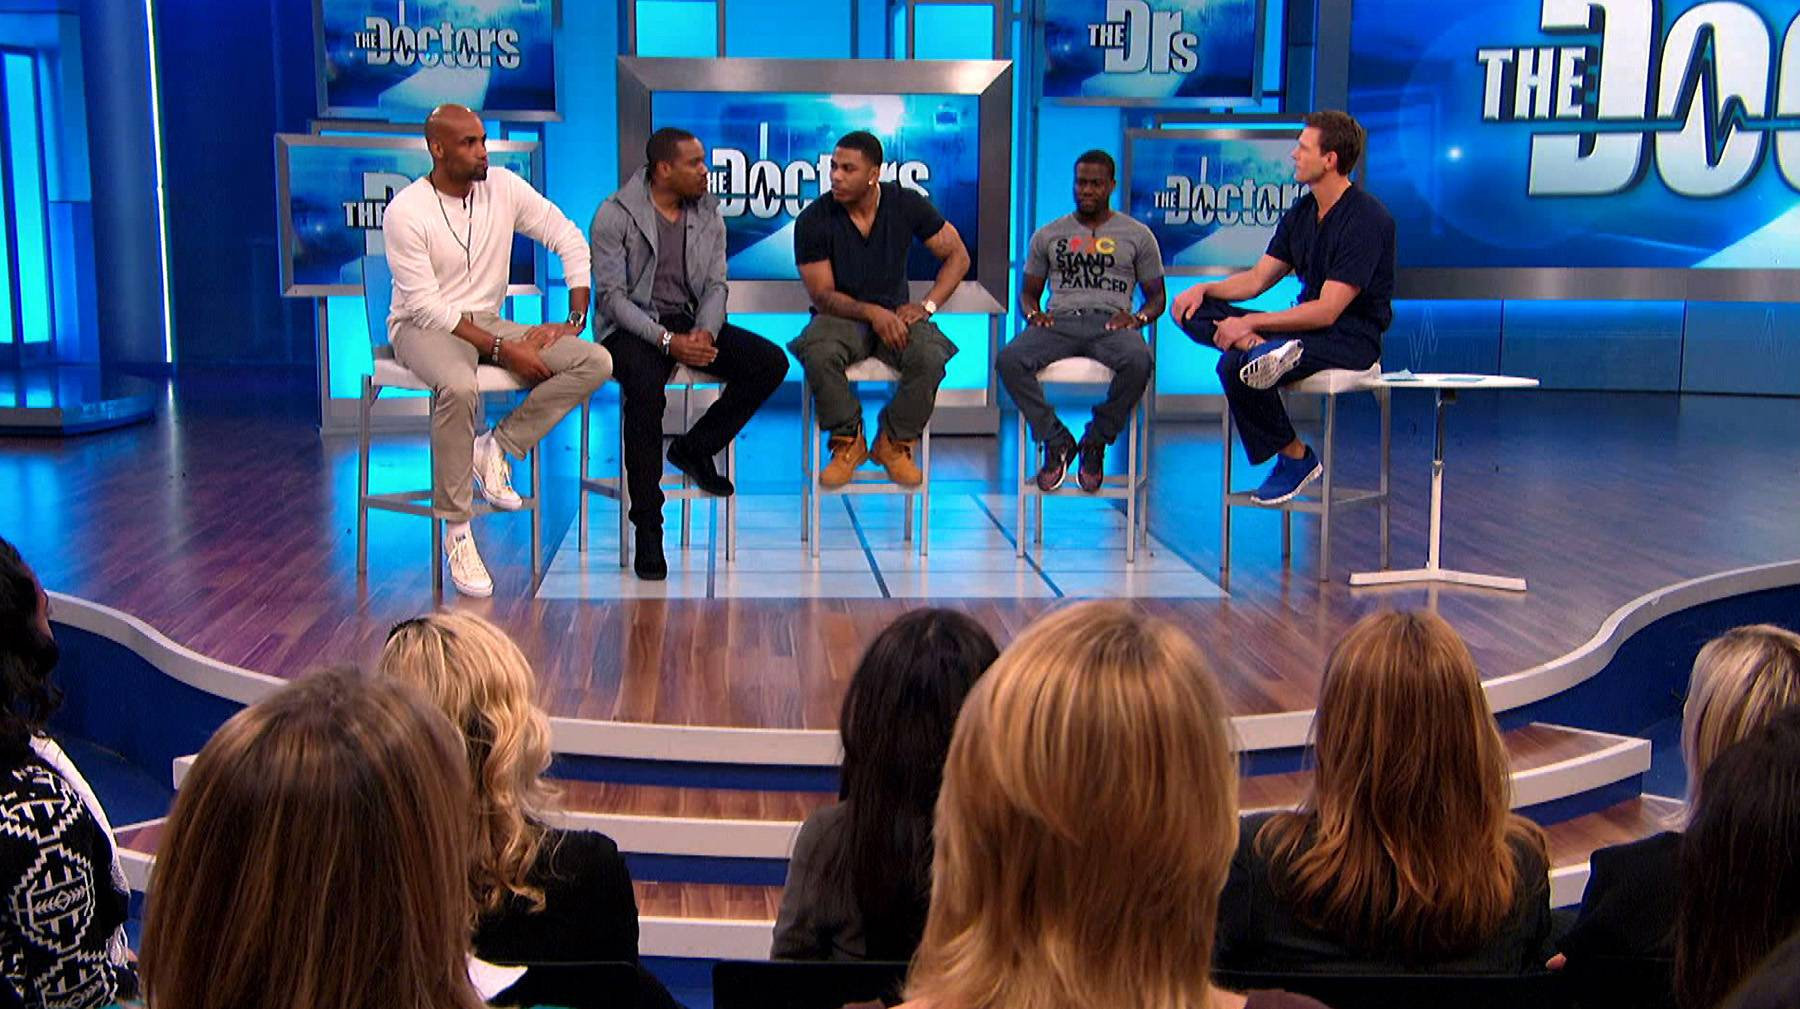 Sounds Like the Guys Took a Test - Whoever is a match might have the key to saving Nick.(Photo: BET)